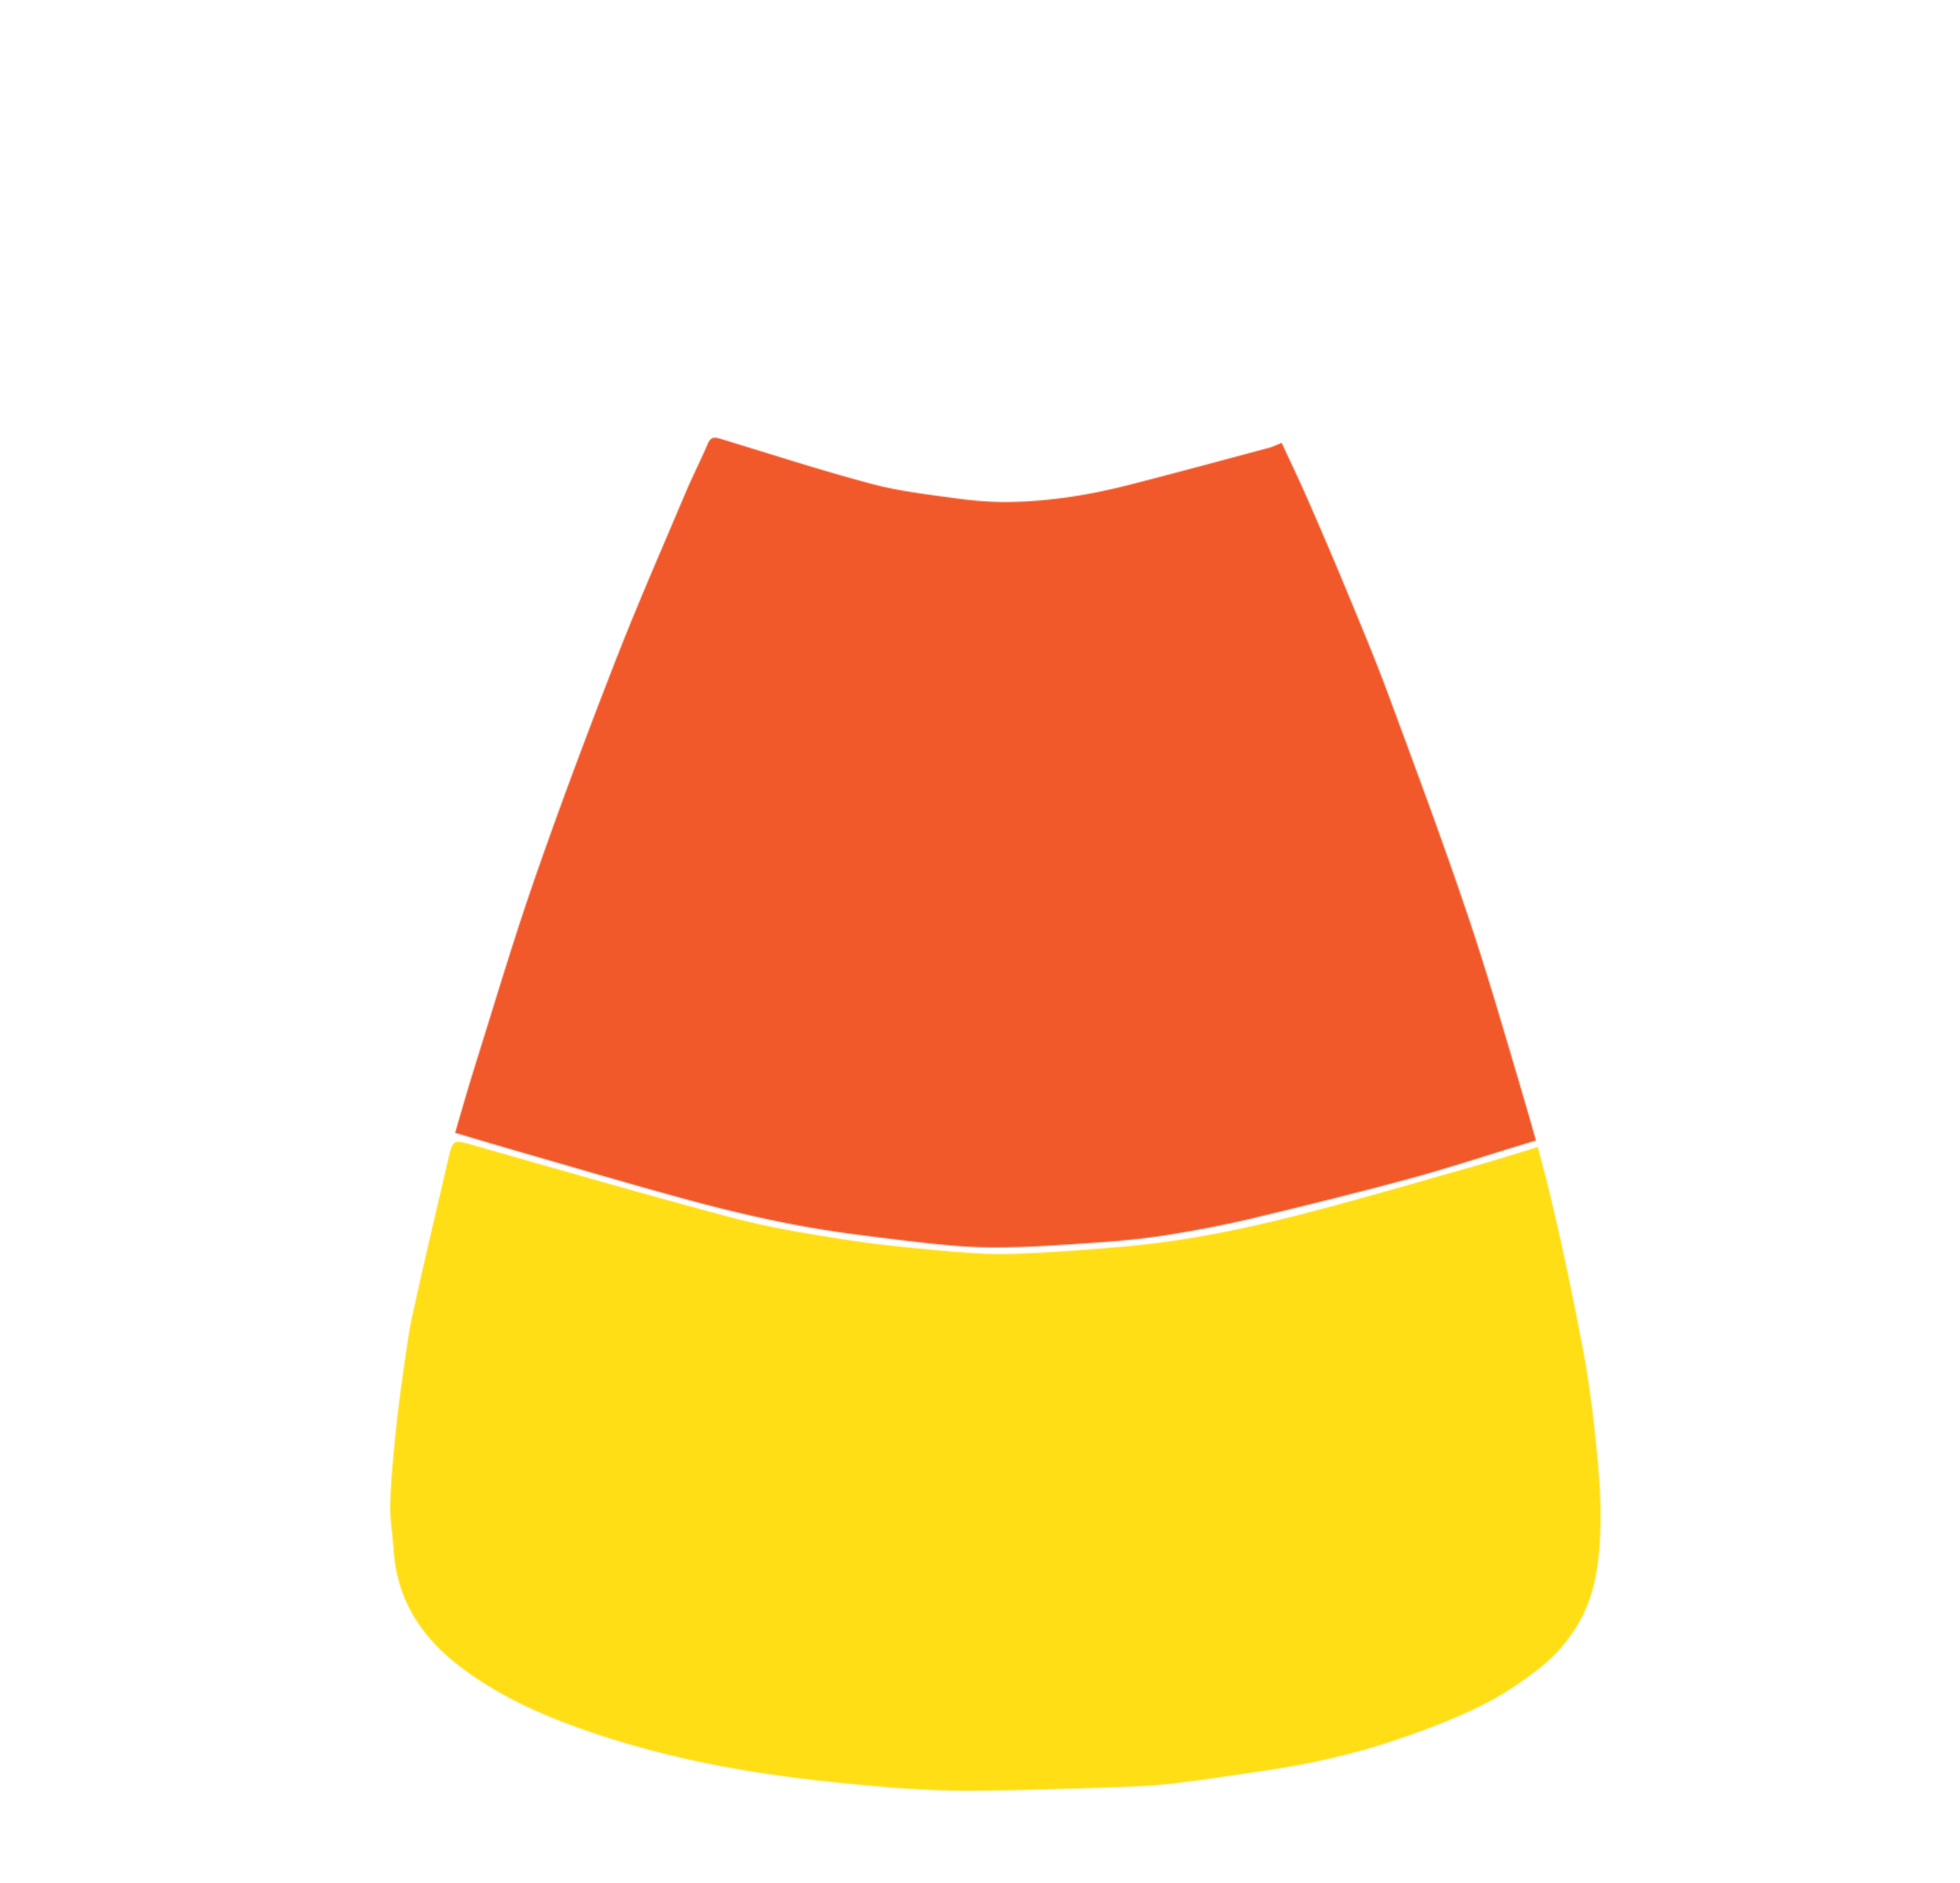 Candy corn png. Free indian clipart download